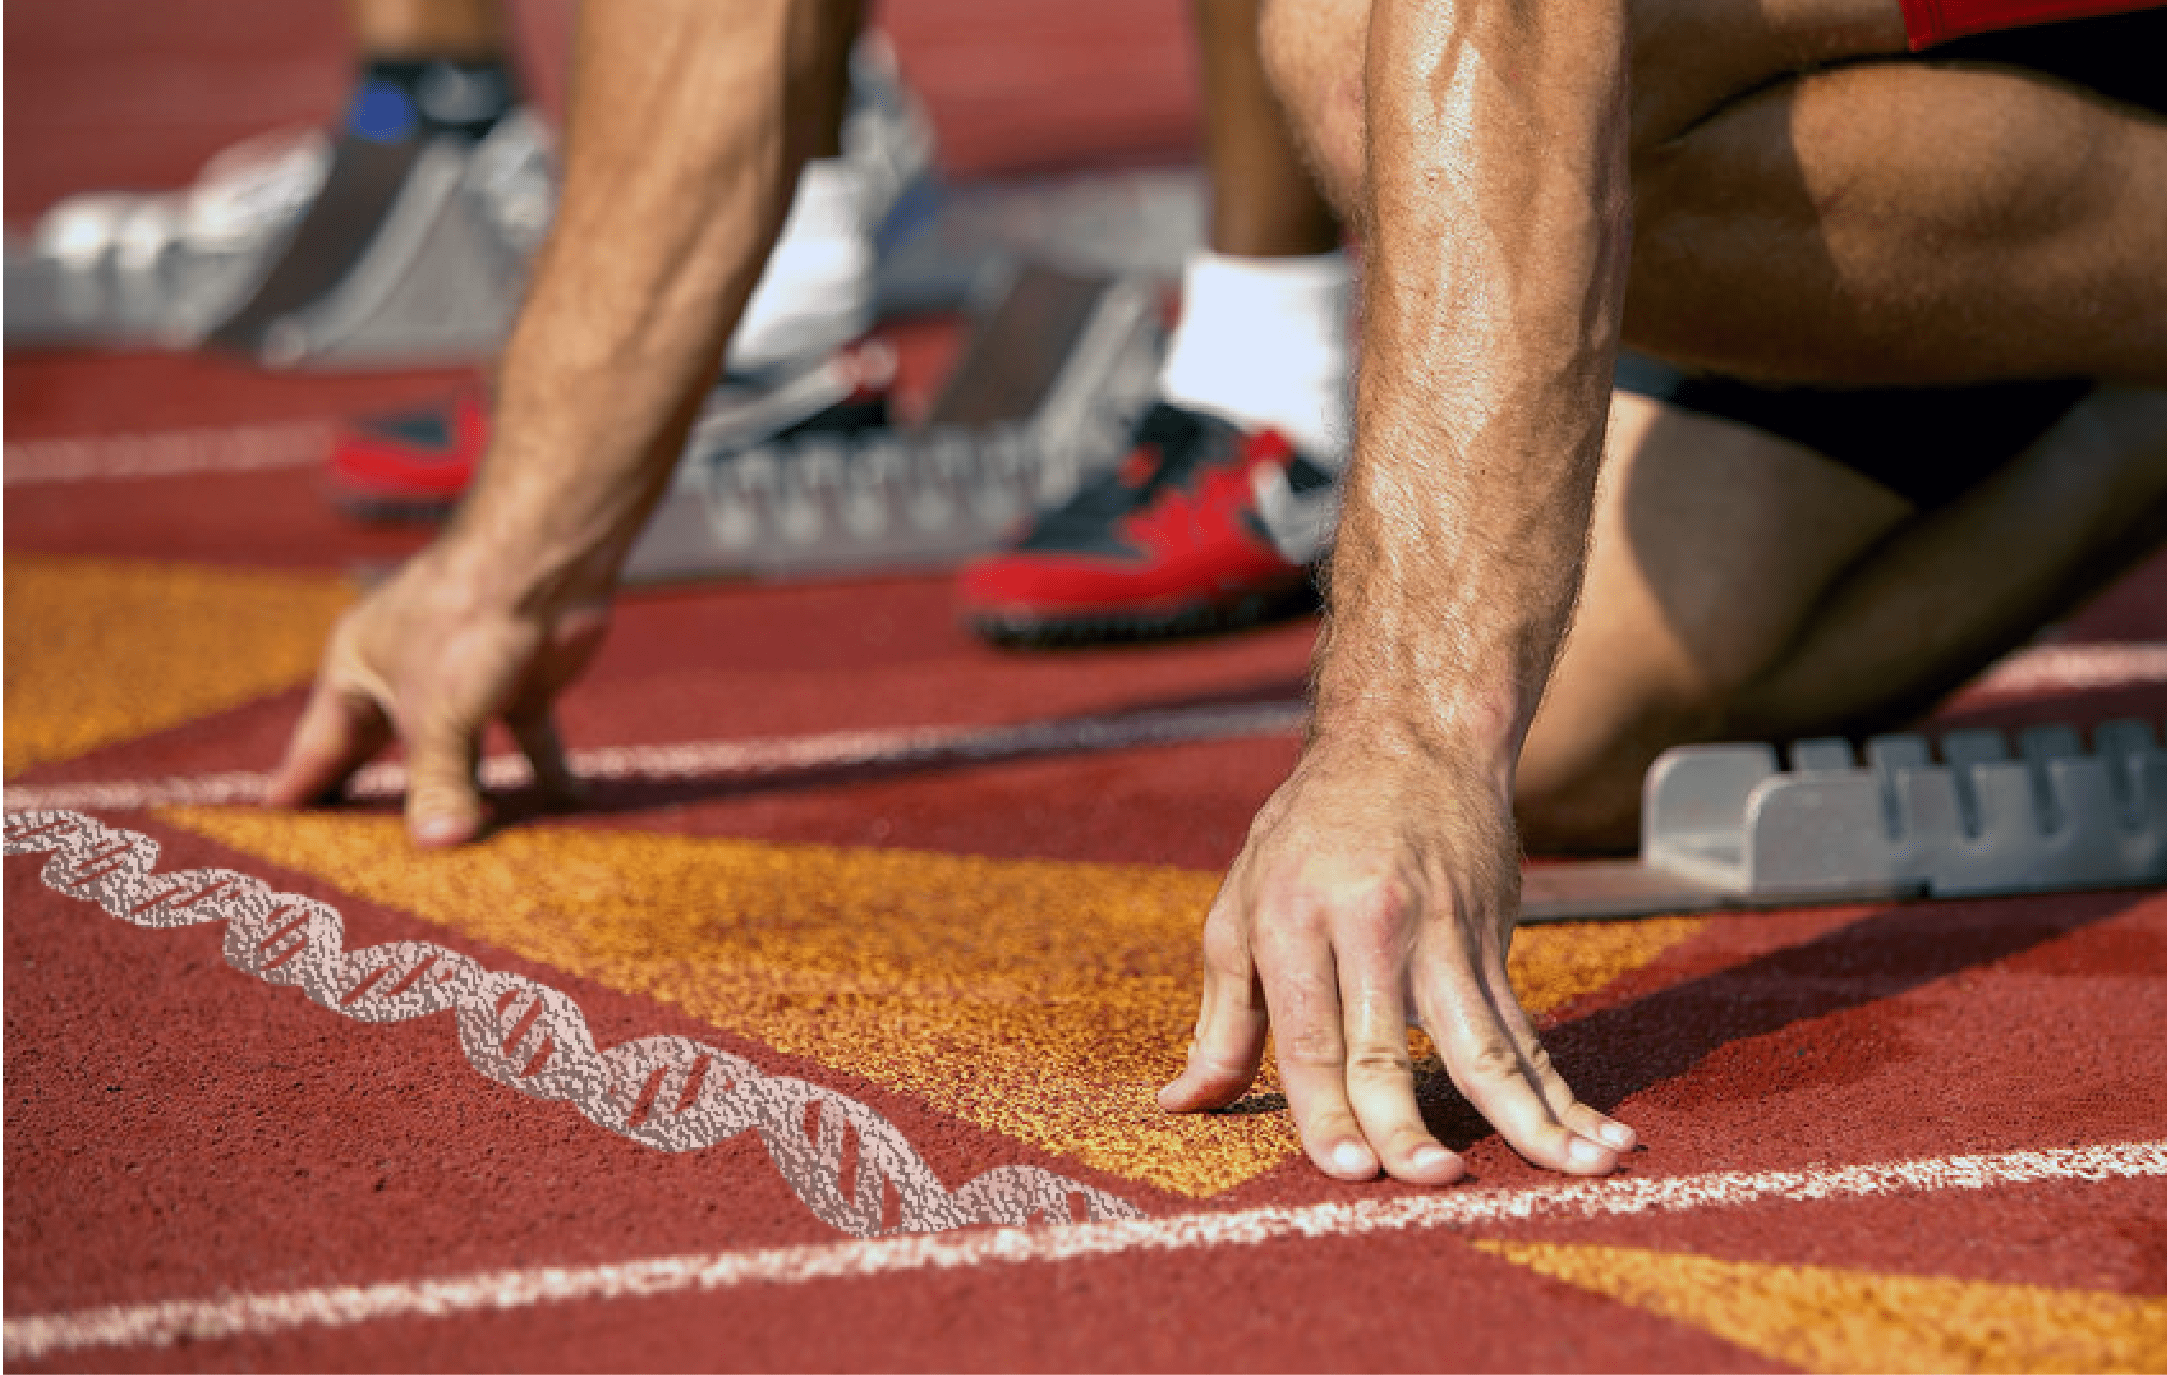 A man positioned at a starting line ready to run a race